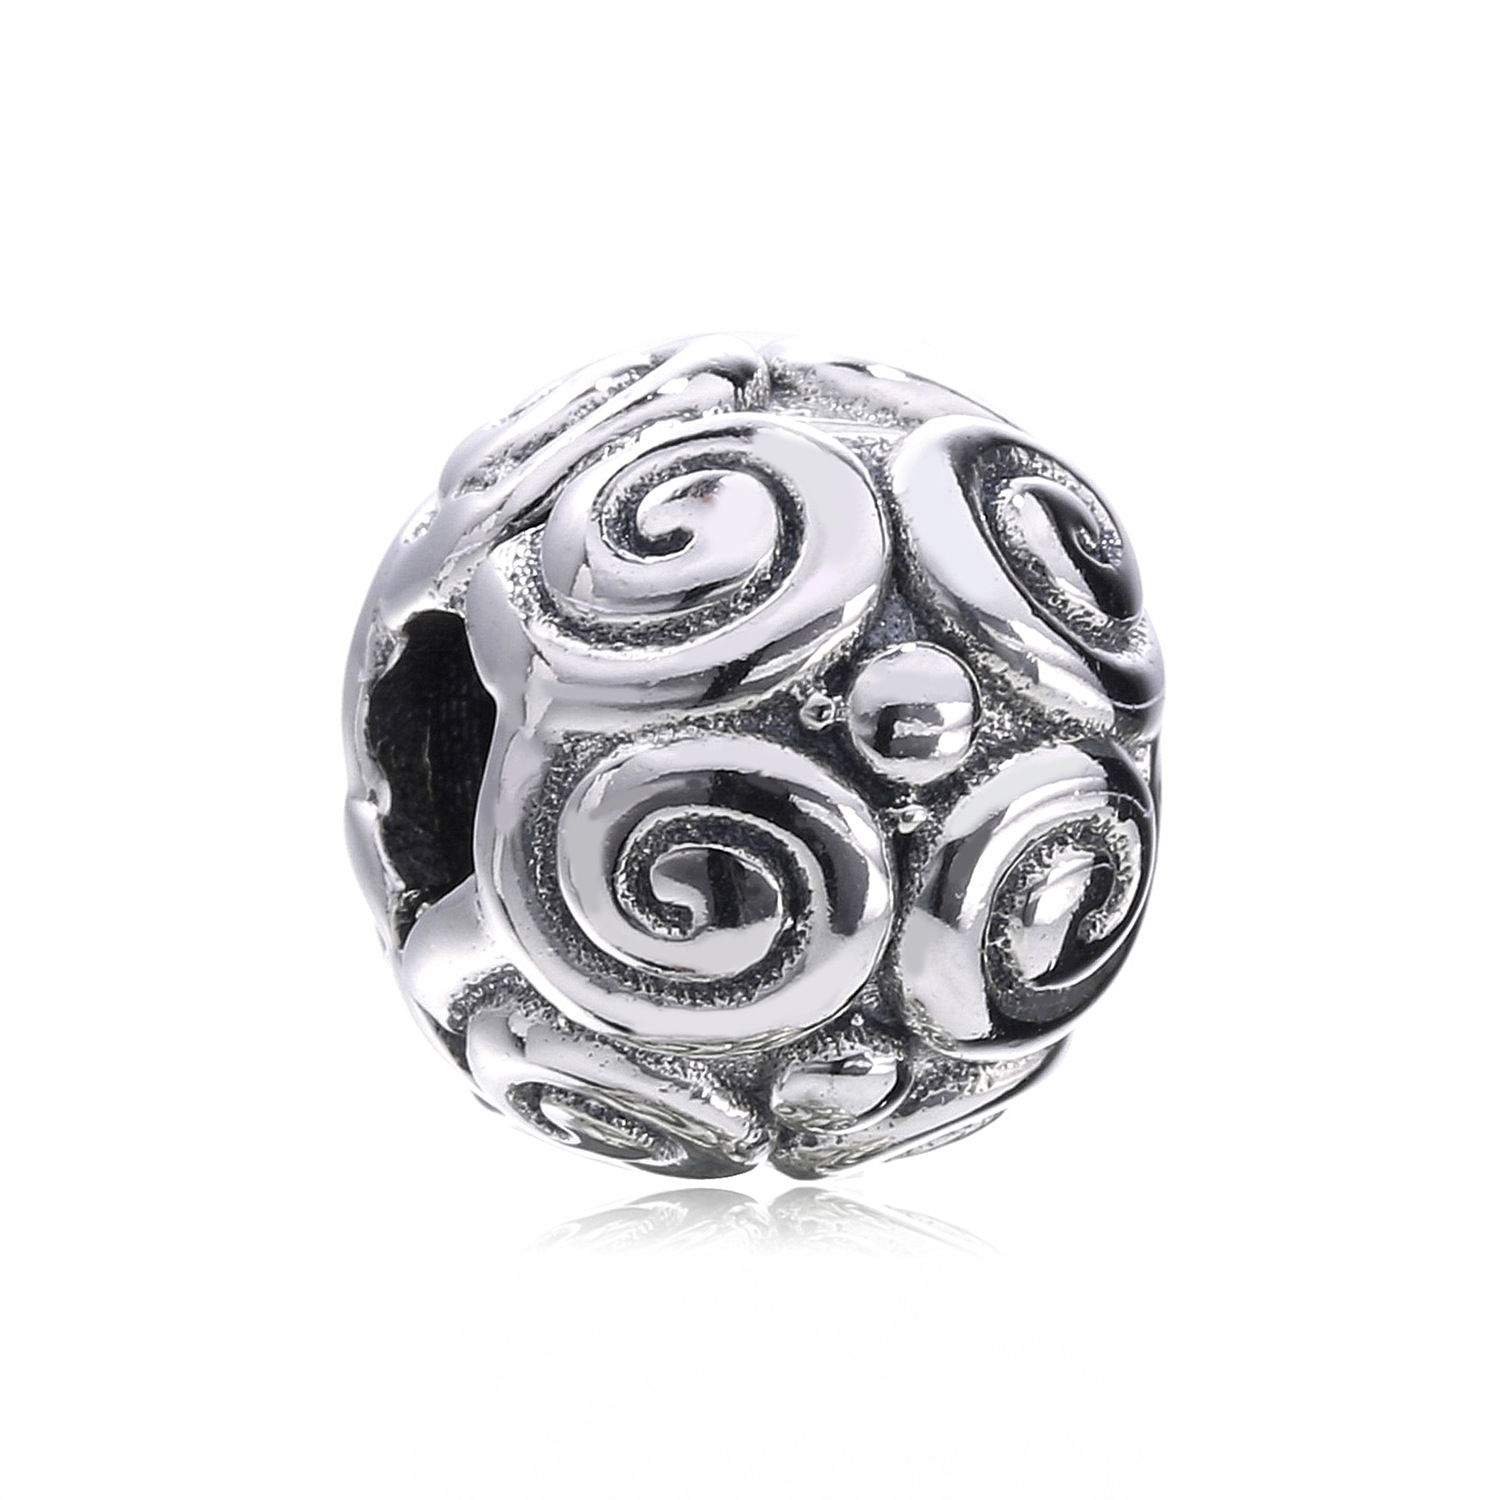 100% 925 Sterling Silver Lock Clip Stopper Clear CZ Safety clip Beads Fit Pandora Charm Bracelets Fashion Charms Jewelry